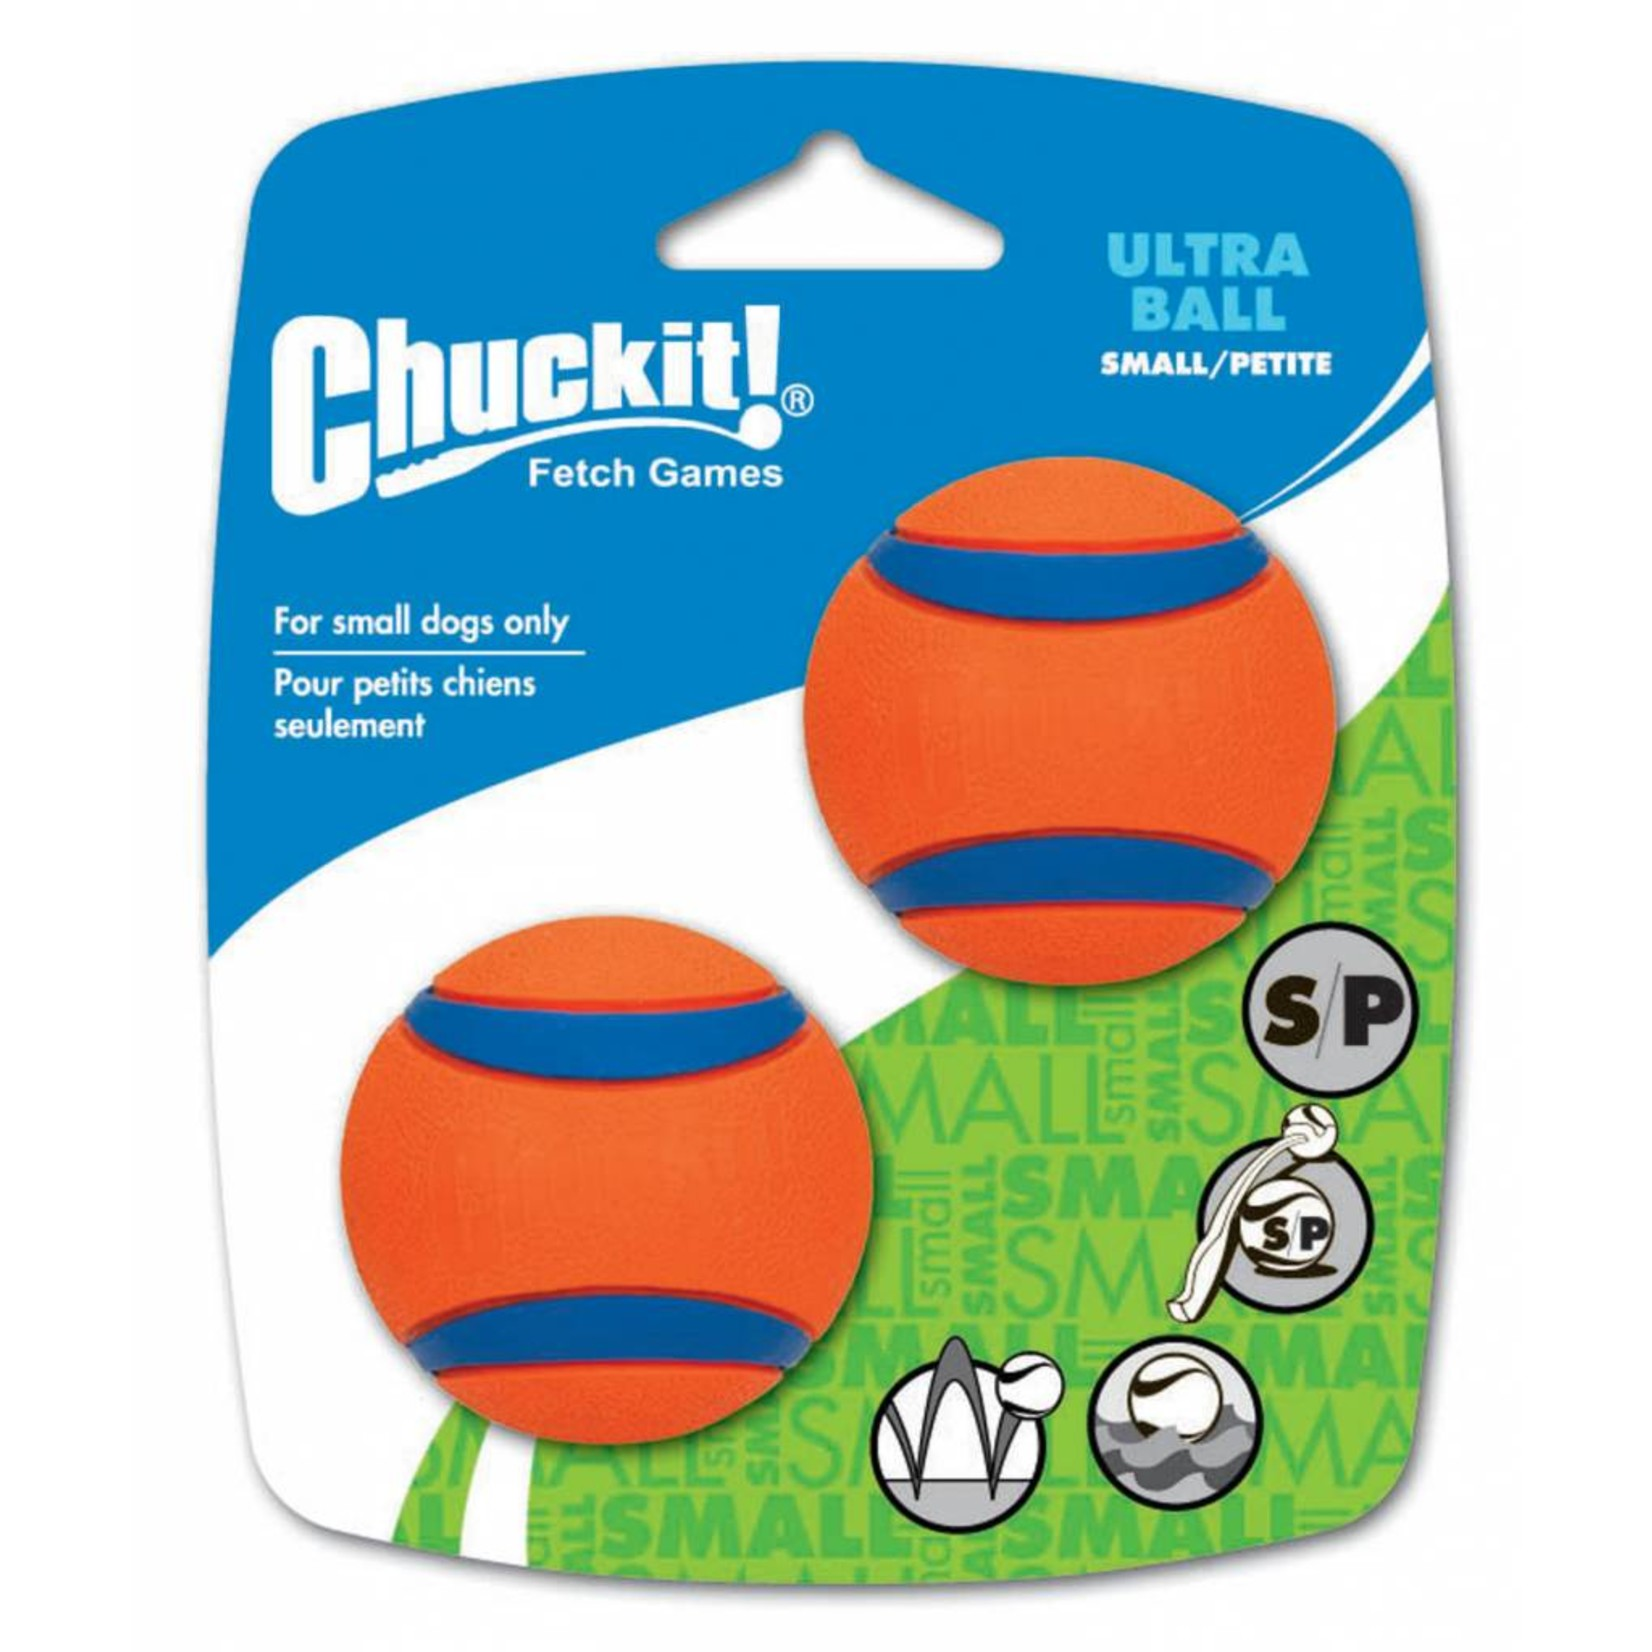 Chuckit! Ultra Ball Dog Toy, Small 4.8cm, 2 pack